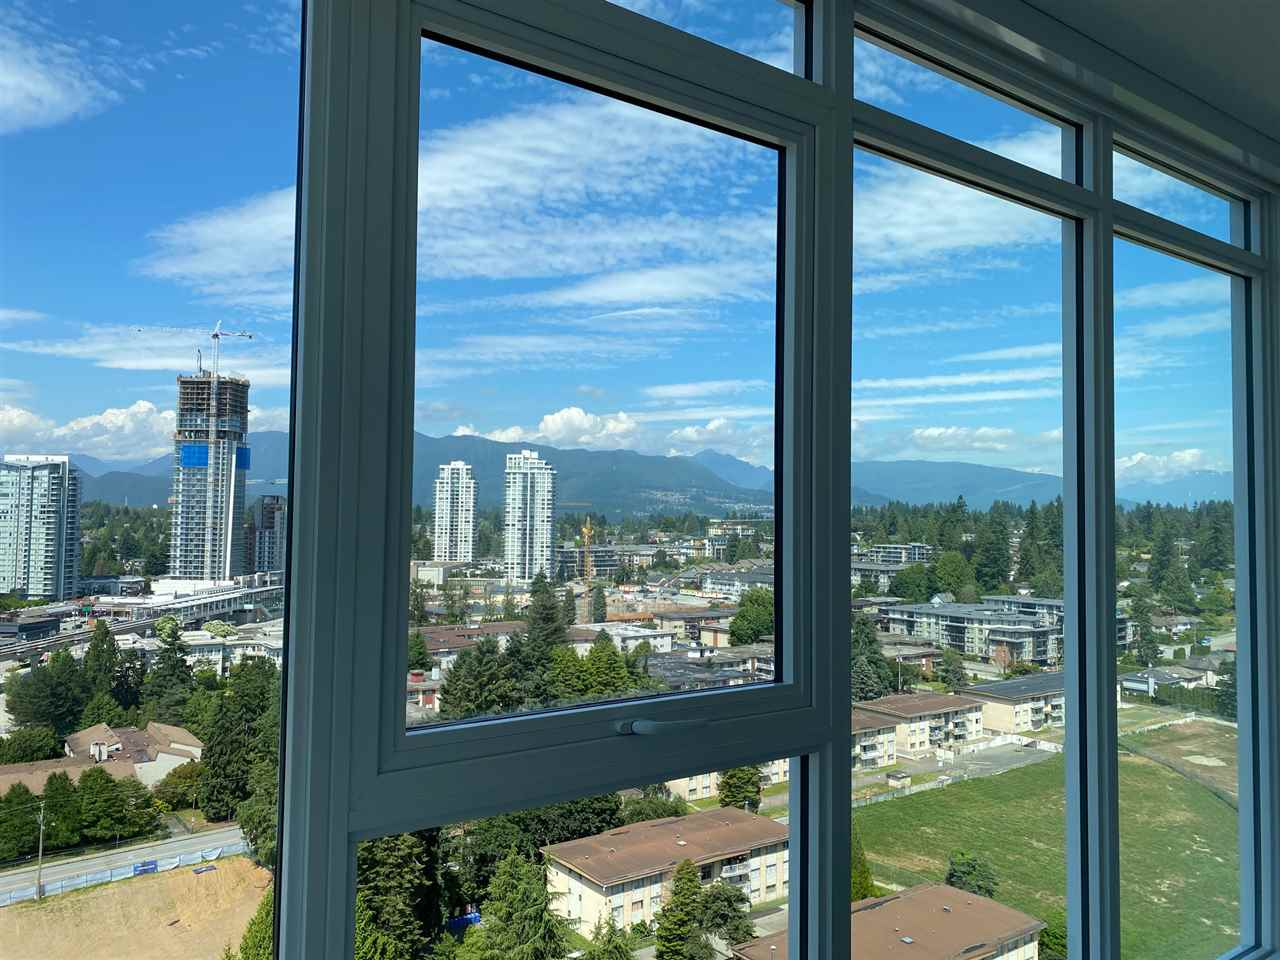 2009 657 WHITING WAY - Coquitlam West Apartment/Condo for sale, 2 Bedrooms (R2470807) - #25